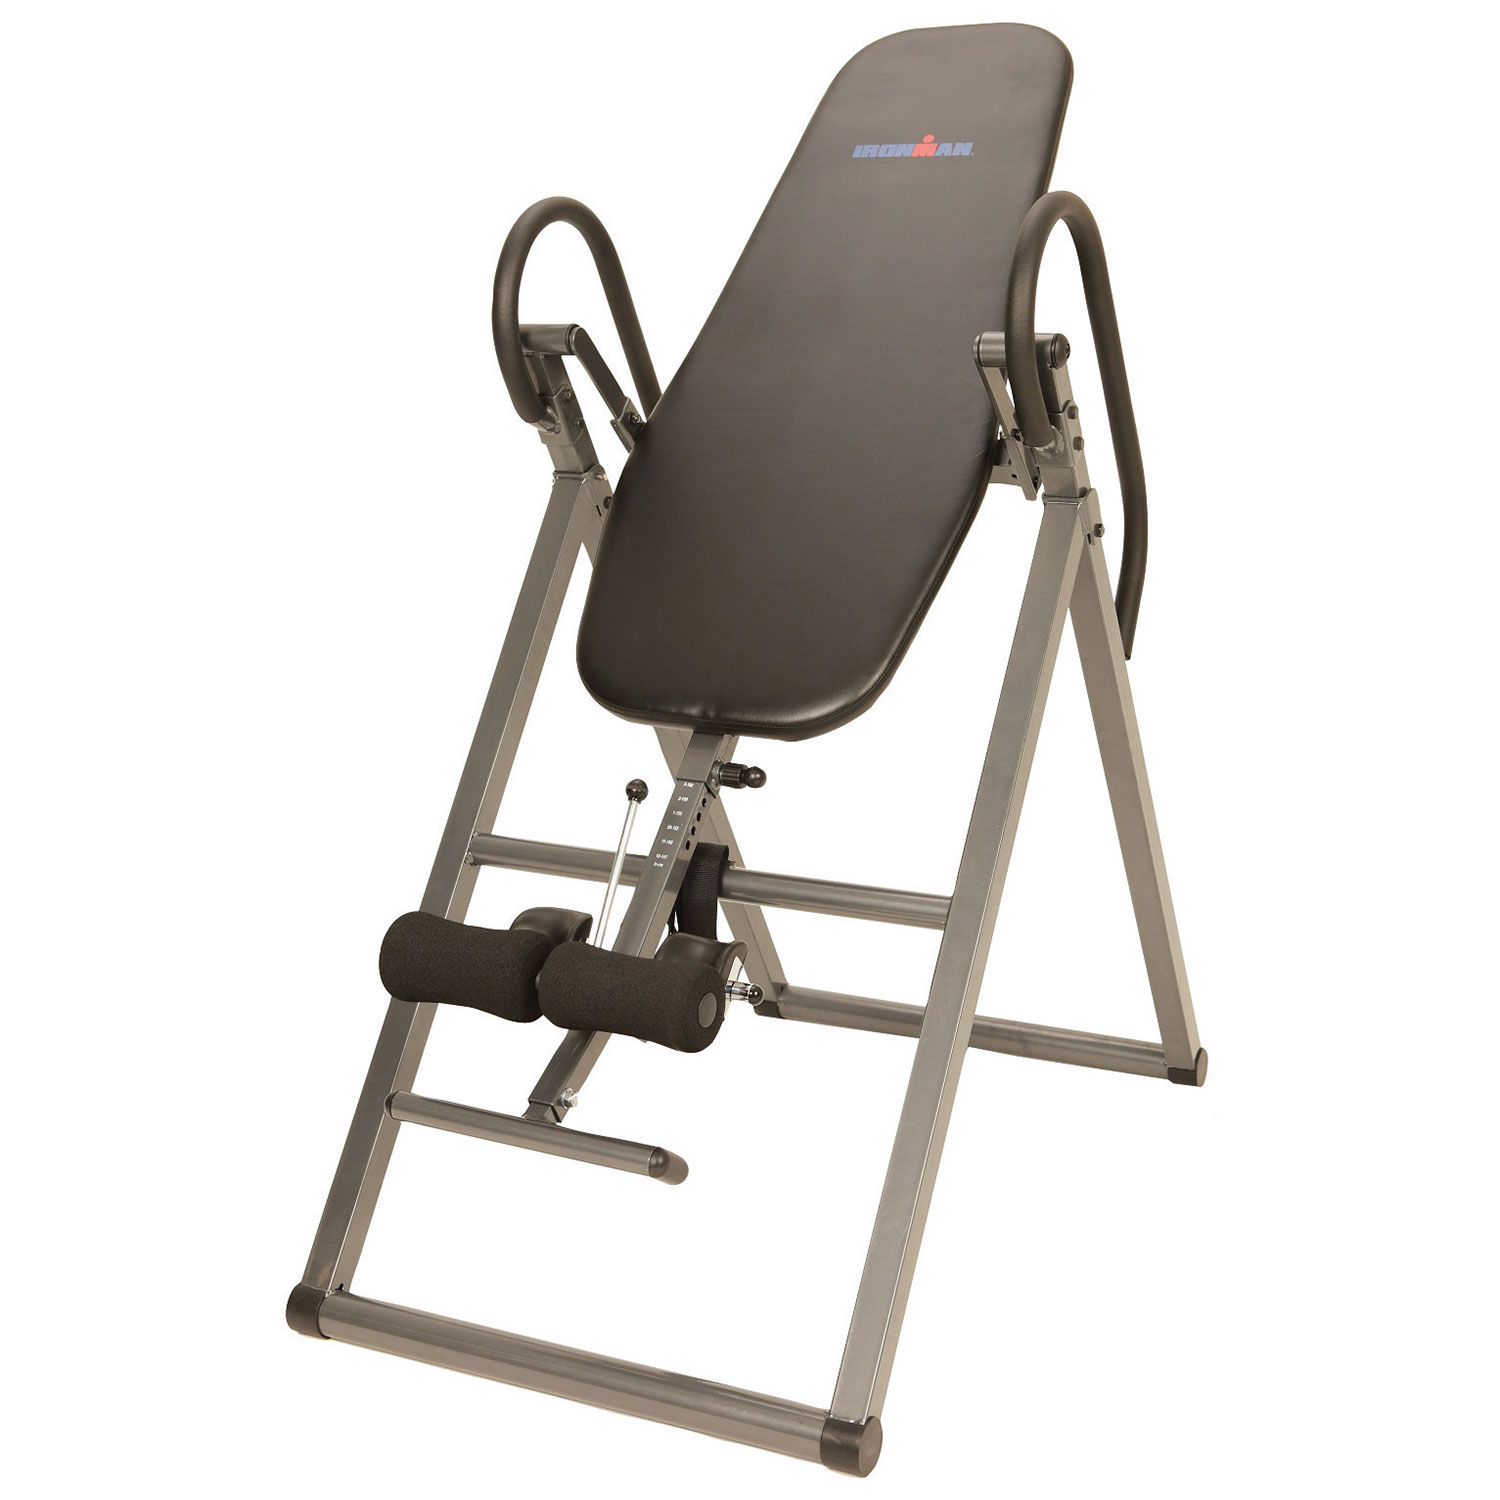 Ironman LX 300 Inversion Table Fitness Recovery Best Buy Canada